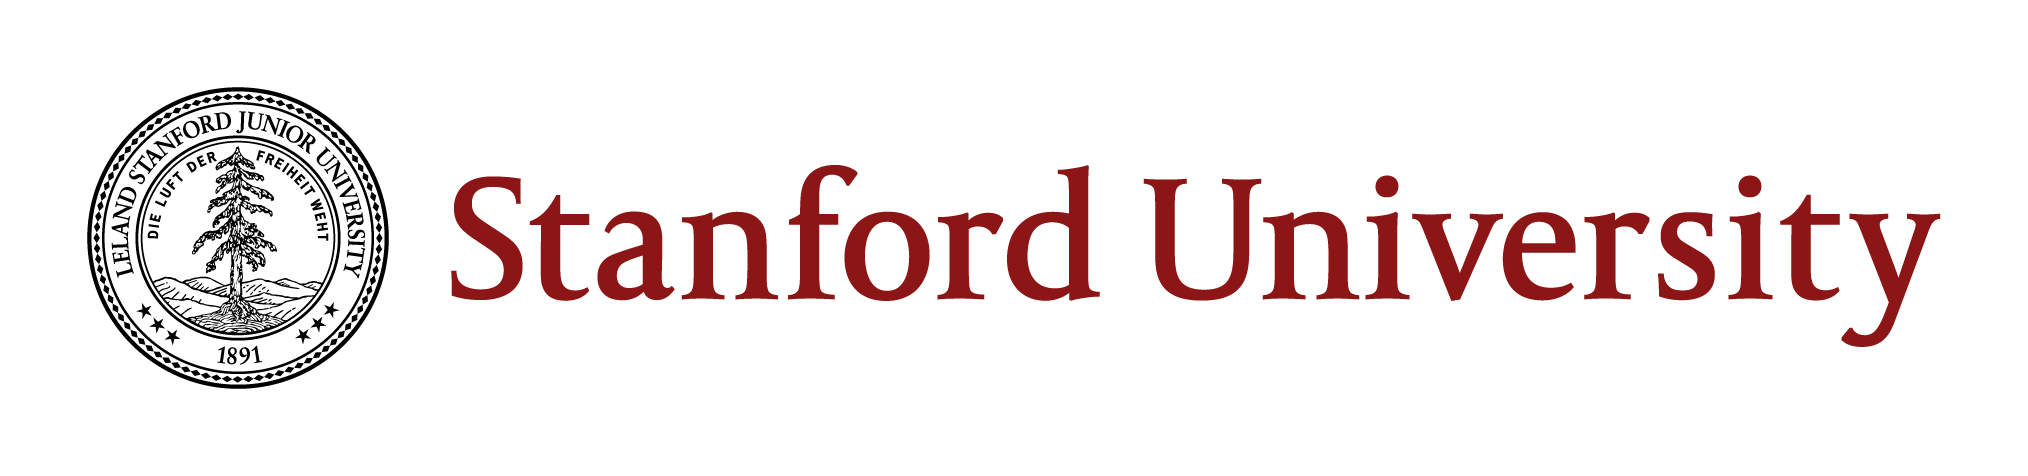 Standford University Logo - Stanford university Logos